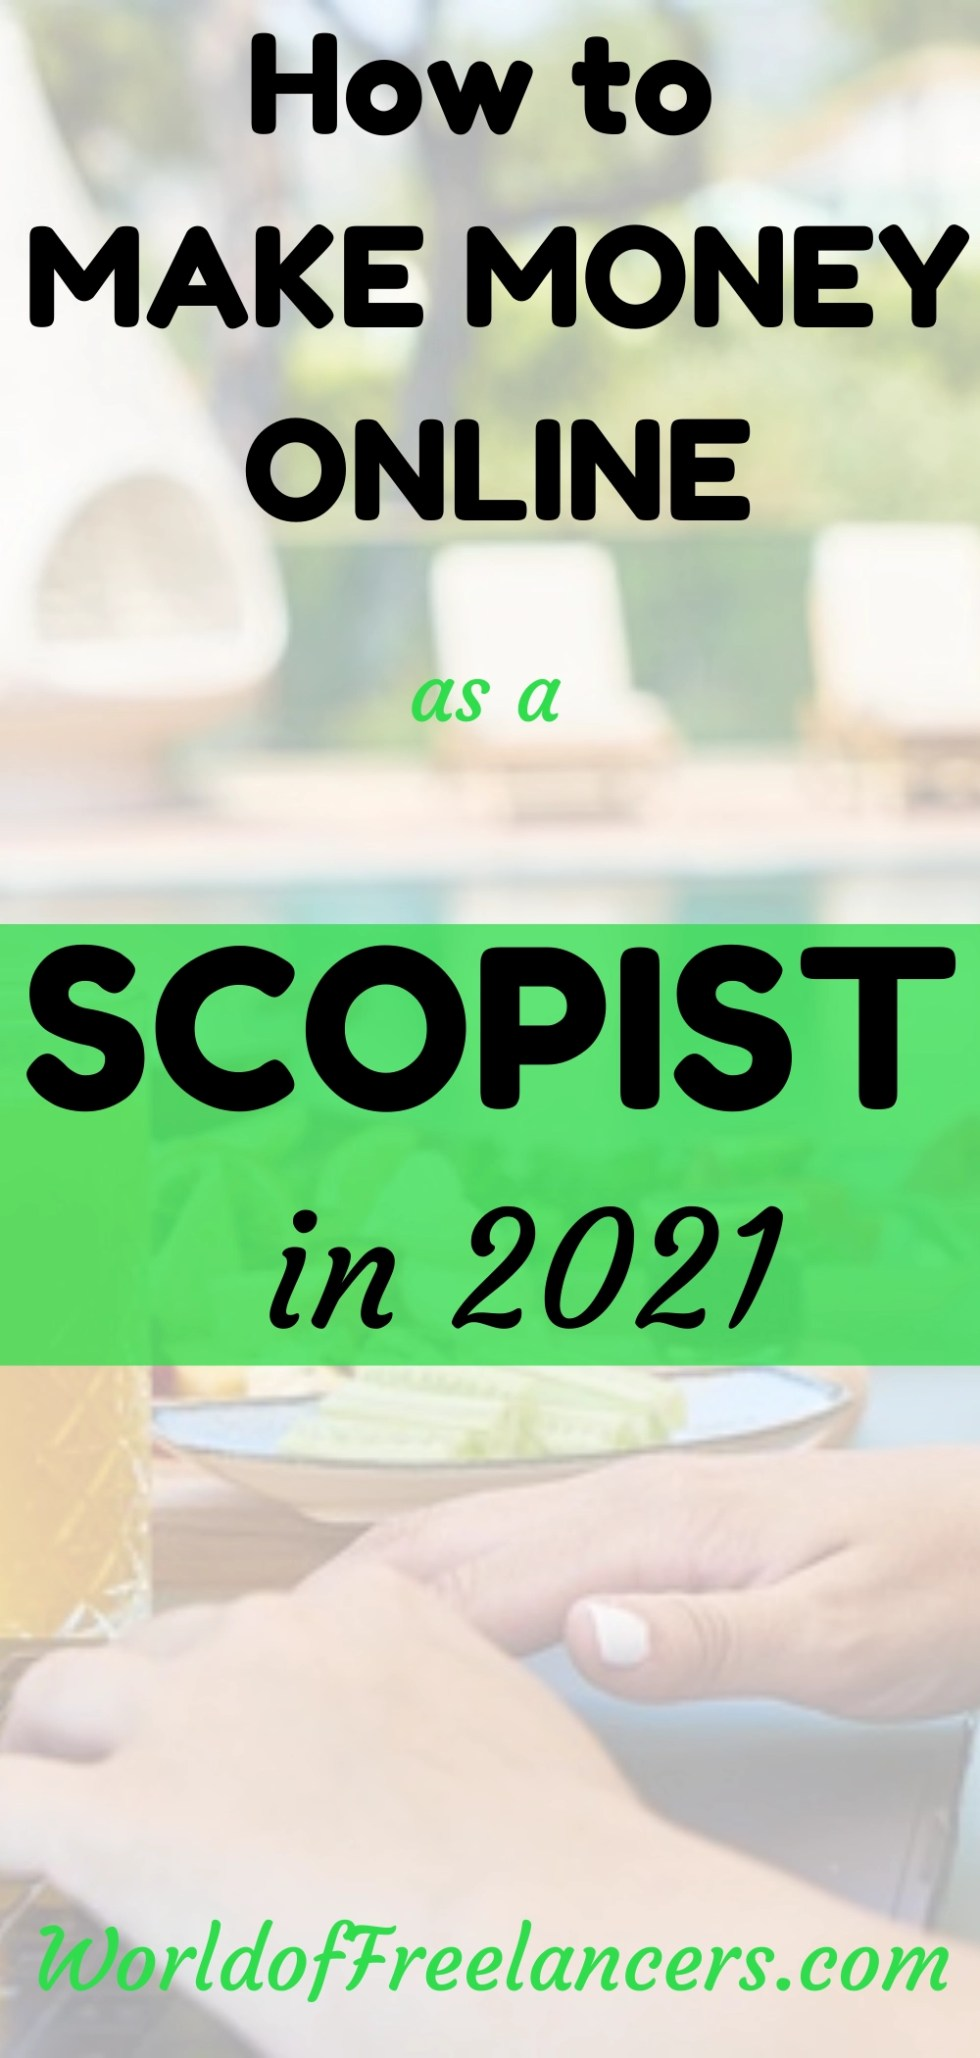 How to make money online as a scopist in 2021